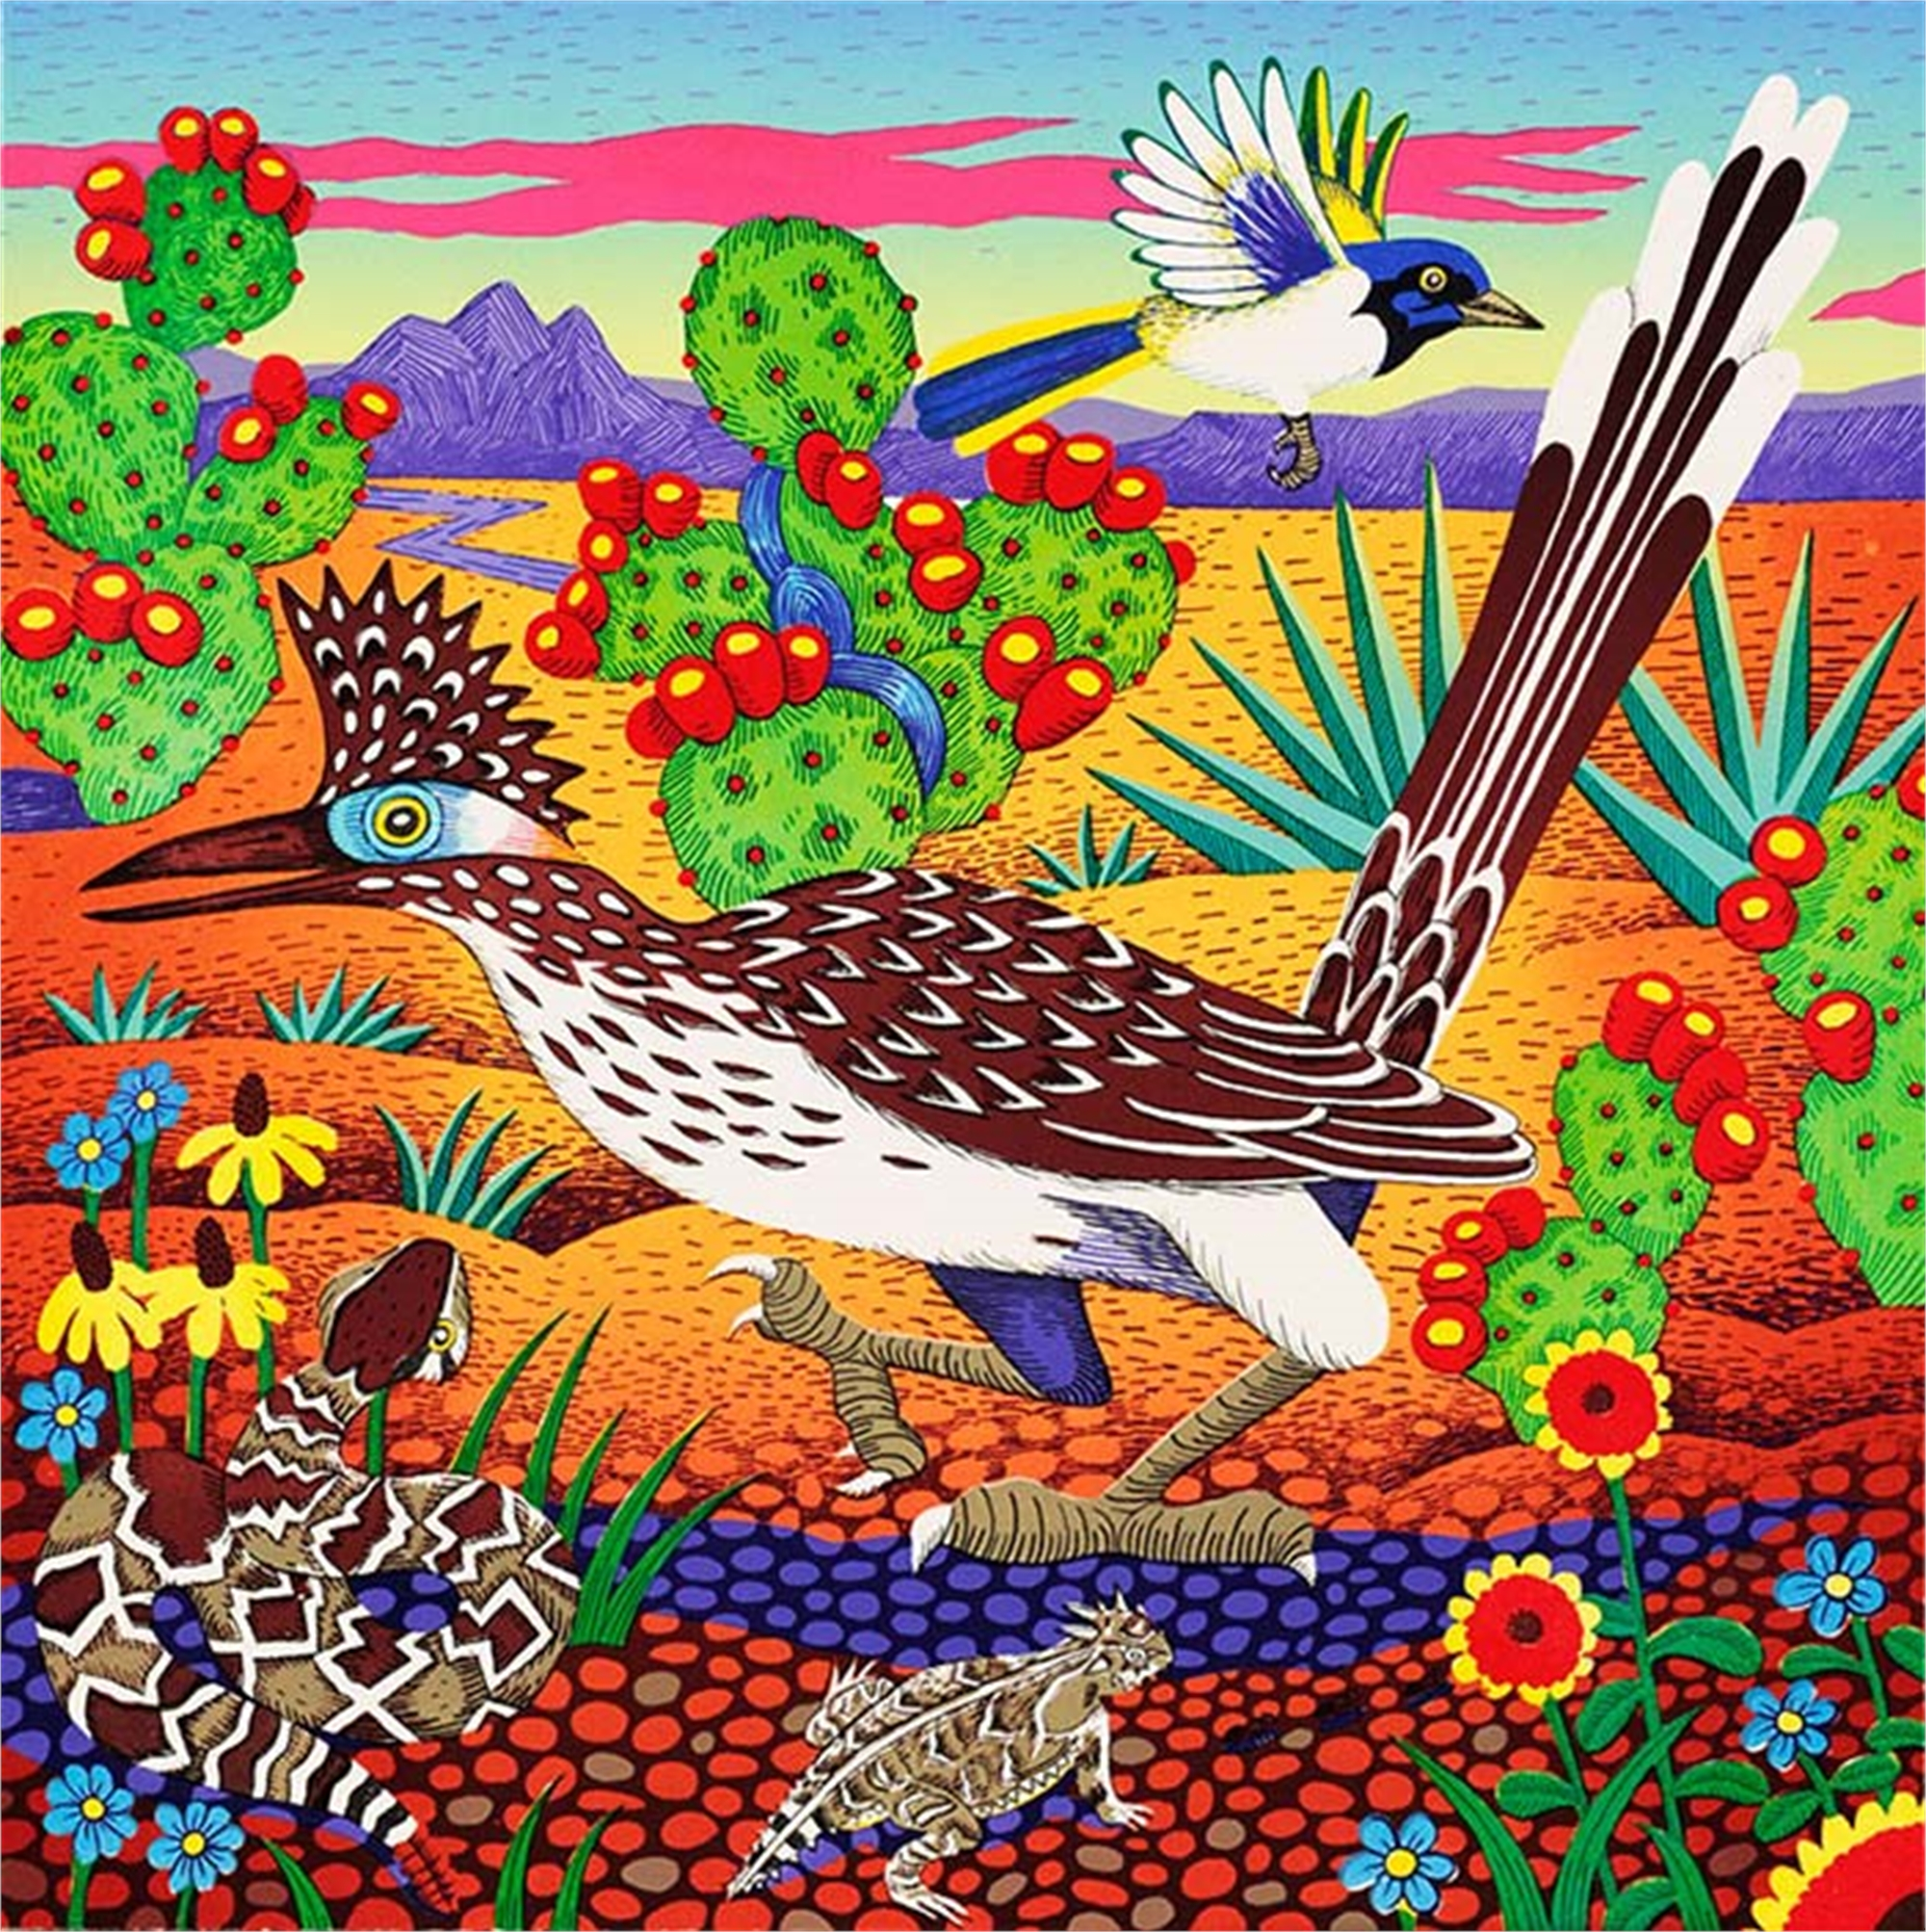 Roadrunner by Billy Hassell